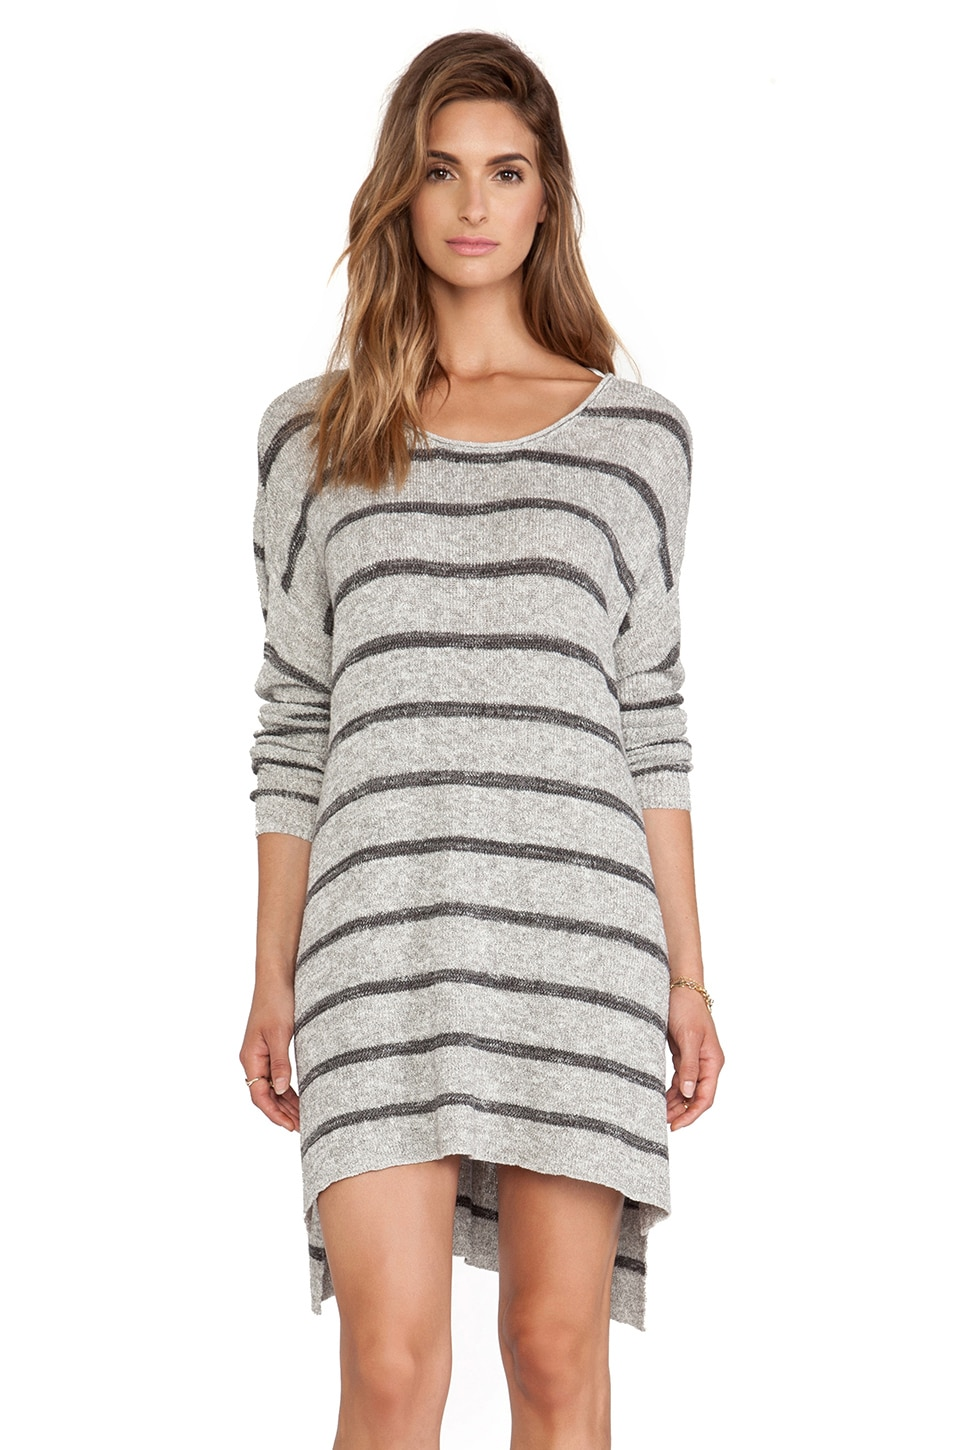 Free People Shipping News Tunic in Grey Combo